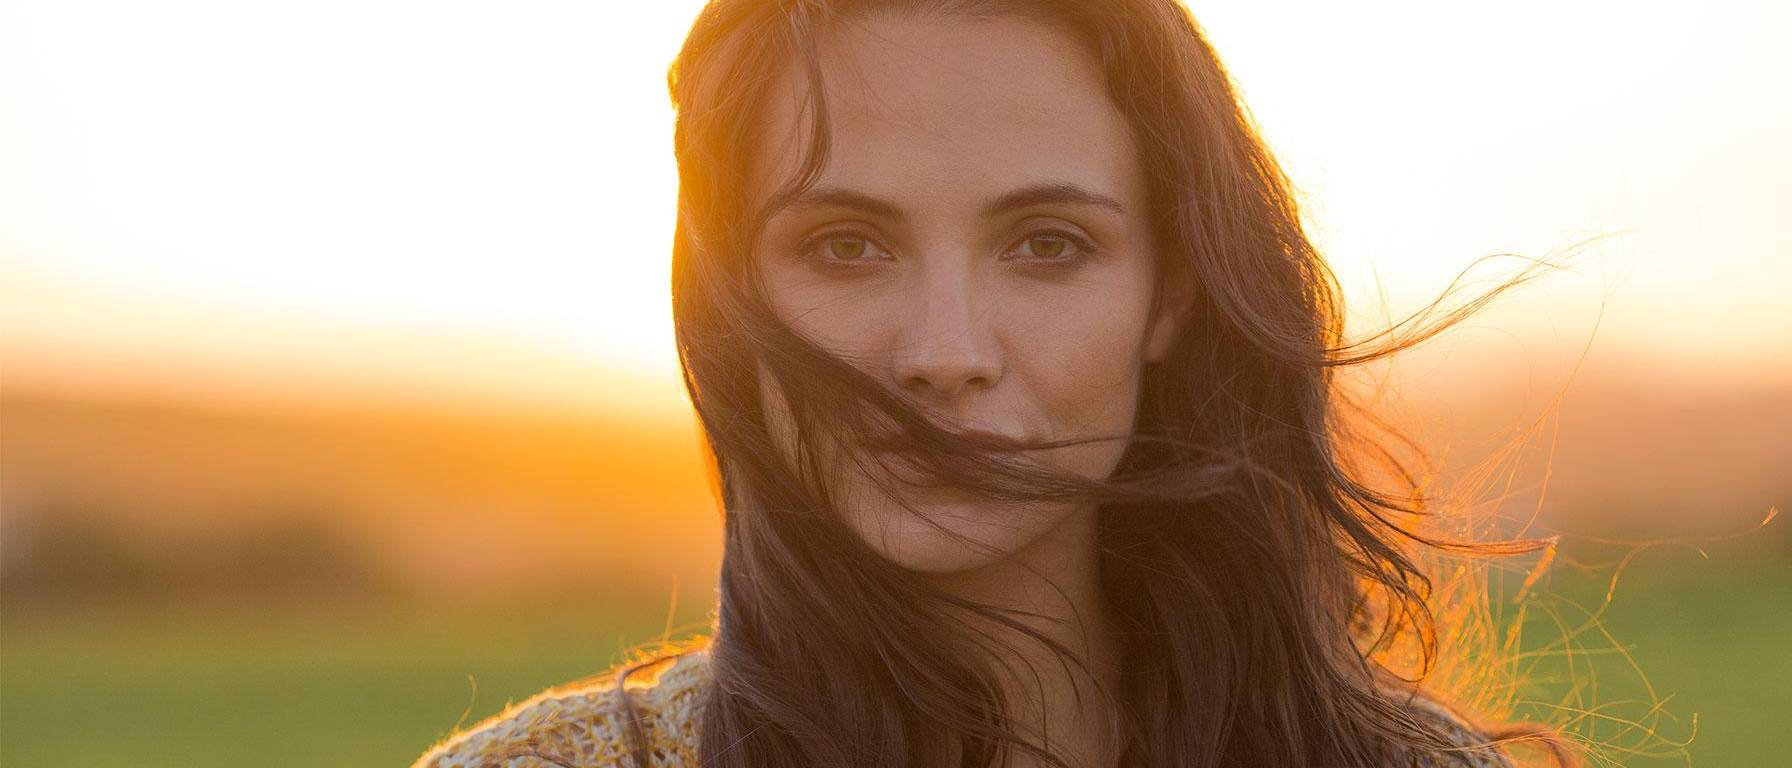 Beautiful woman on field during sunset